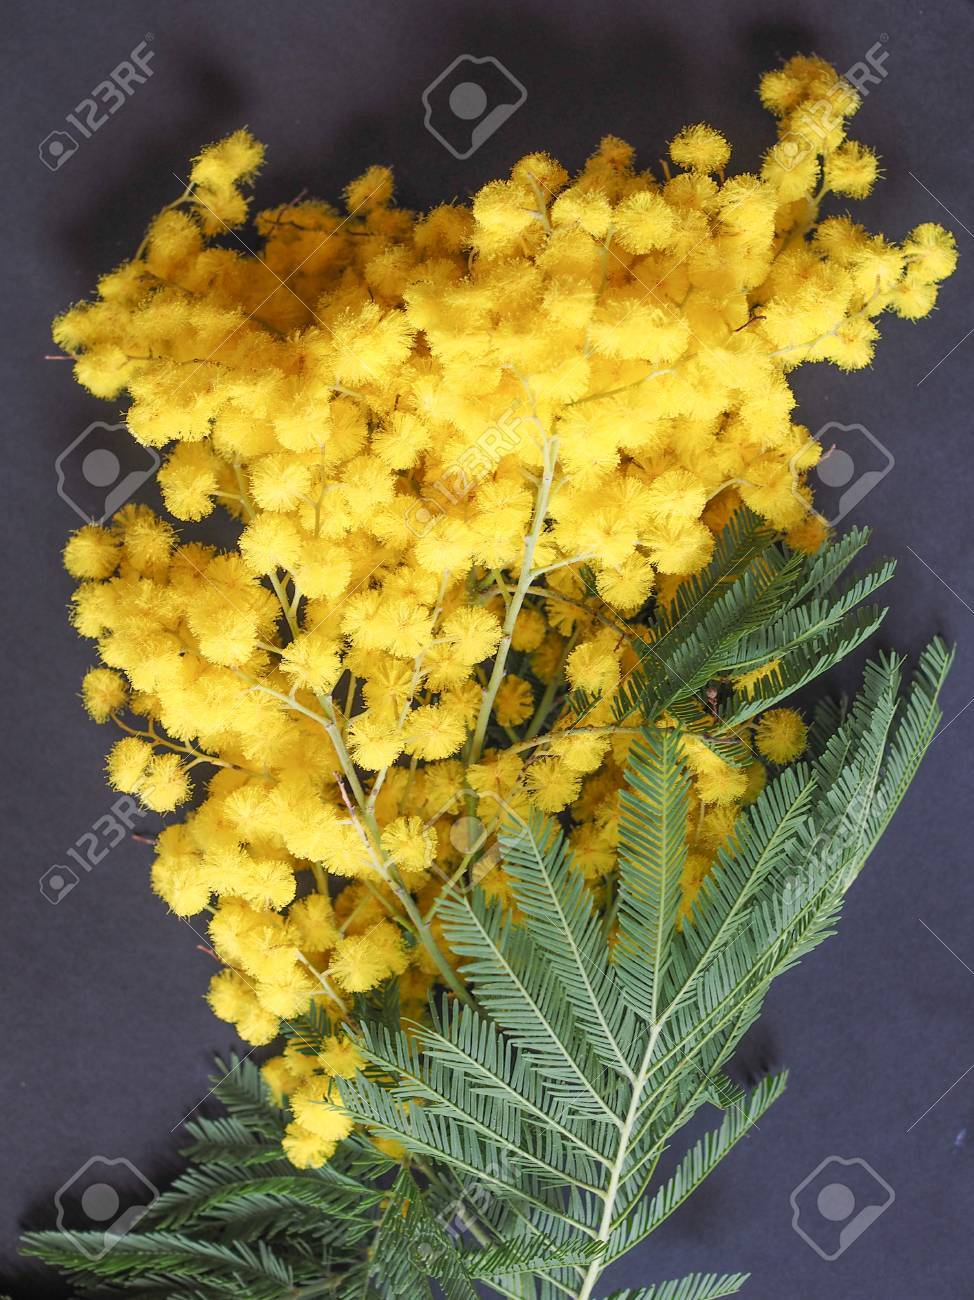 Yellow Mimosa Flowers Of Acacia Dealbata Plant Aka Silver Wattle